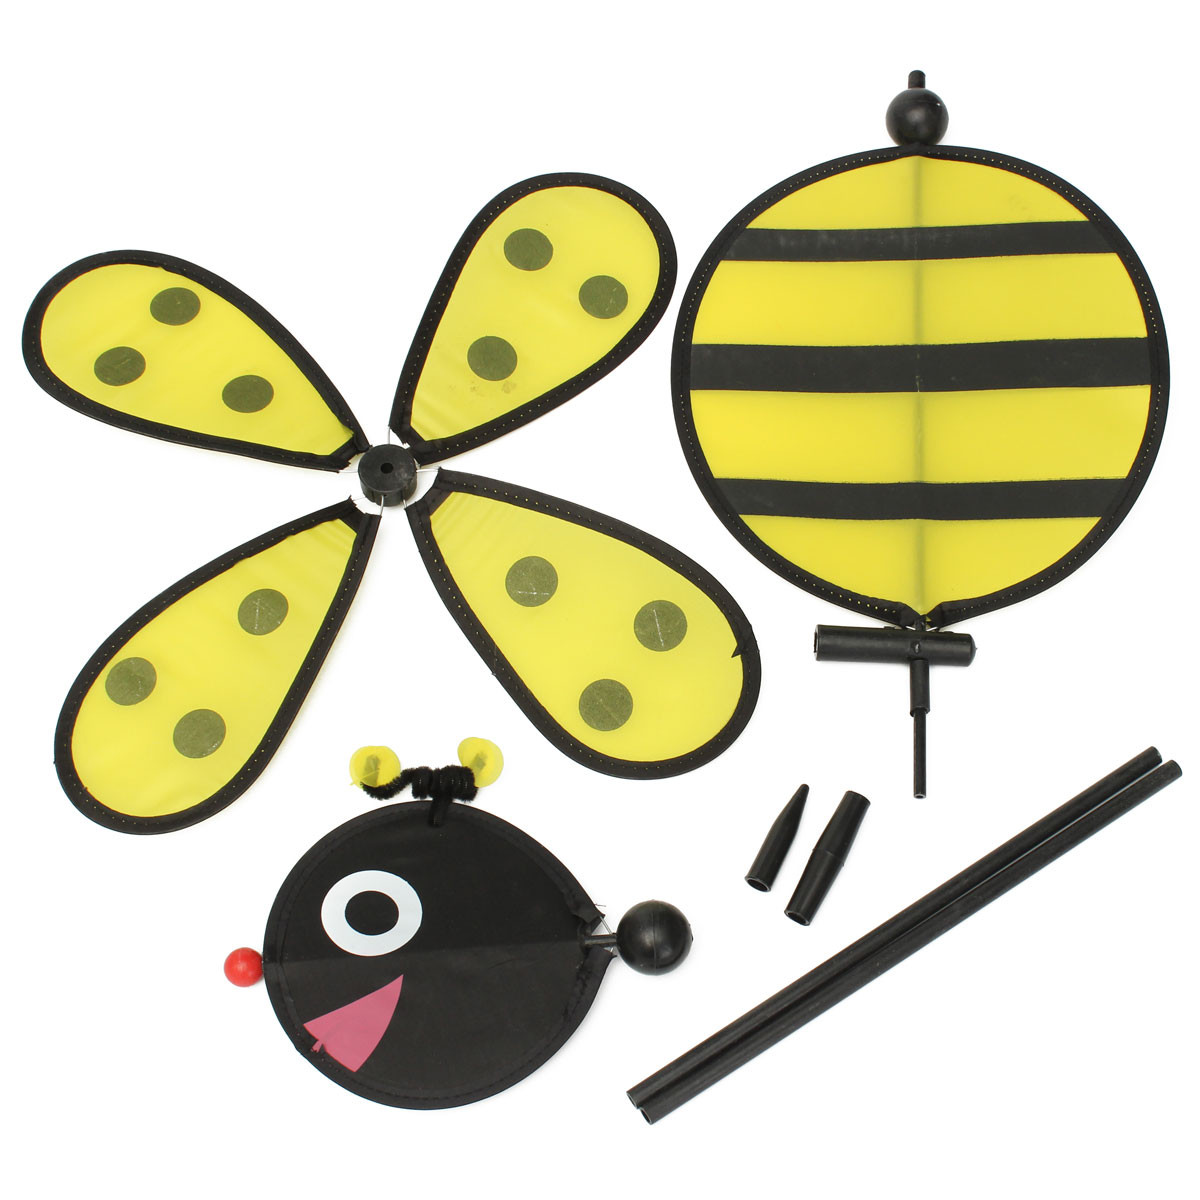 Large Bumble Bee Ladybug Windmill Wind Spinner Whirligig Home Yard Garden Idea